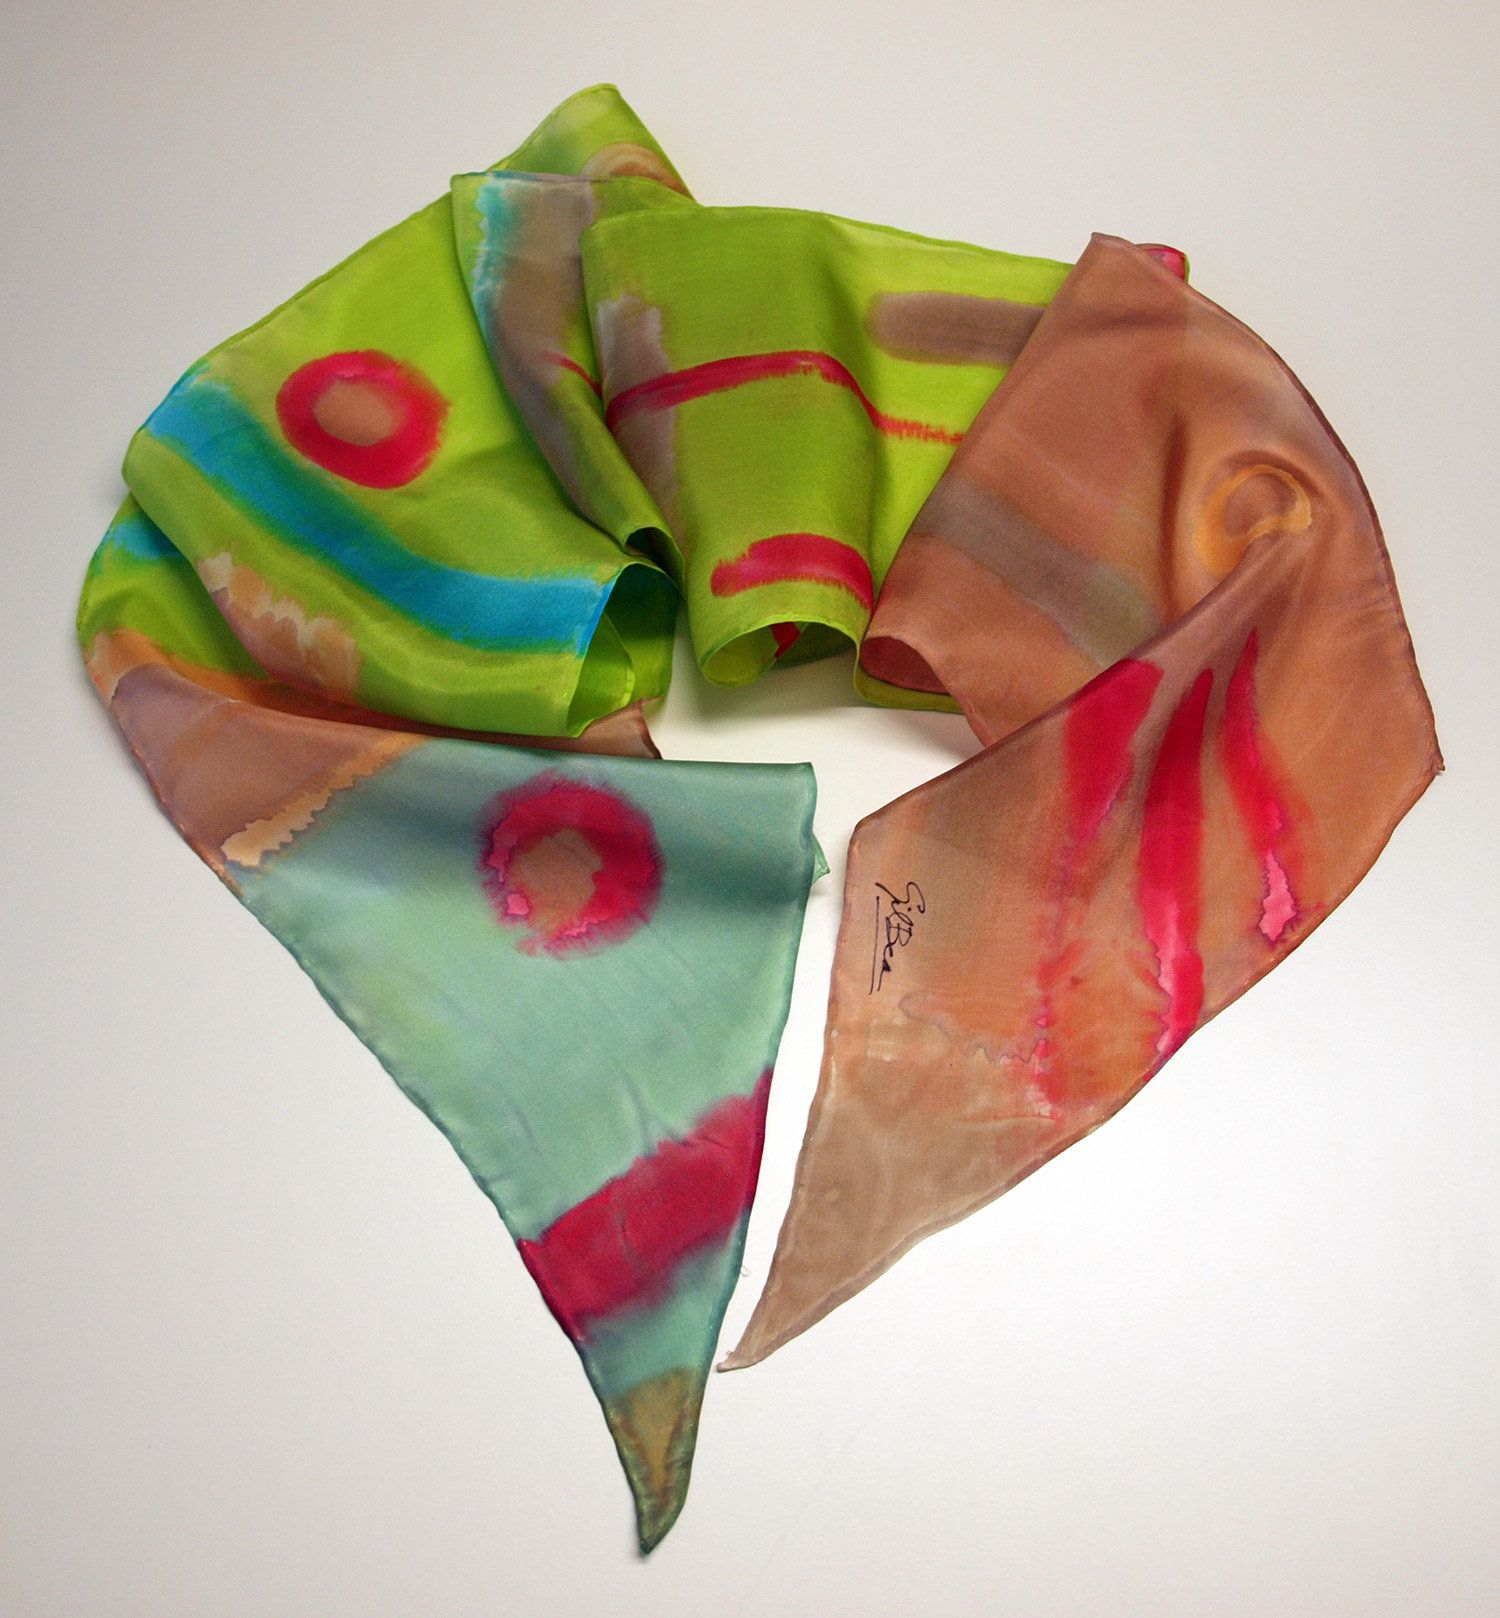 Hand Painted Silk Scarf Silk Scarf for WomenBirthday gift Ready to be shipped 78x7.8 in 200x20 cmUnique gift for women girlfriend mom